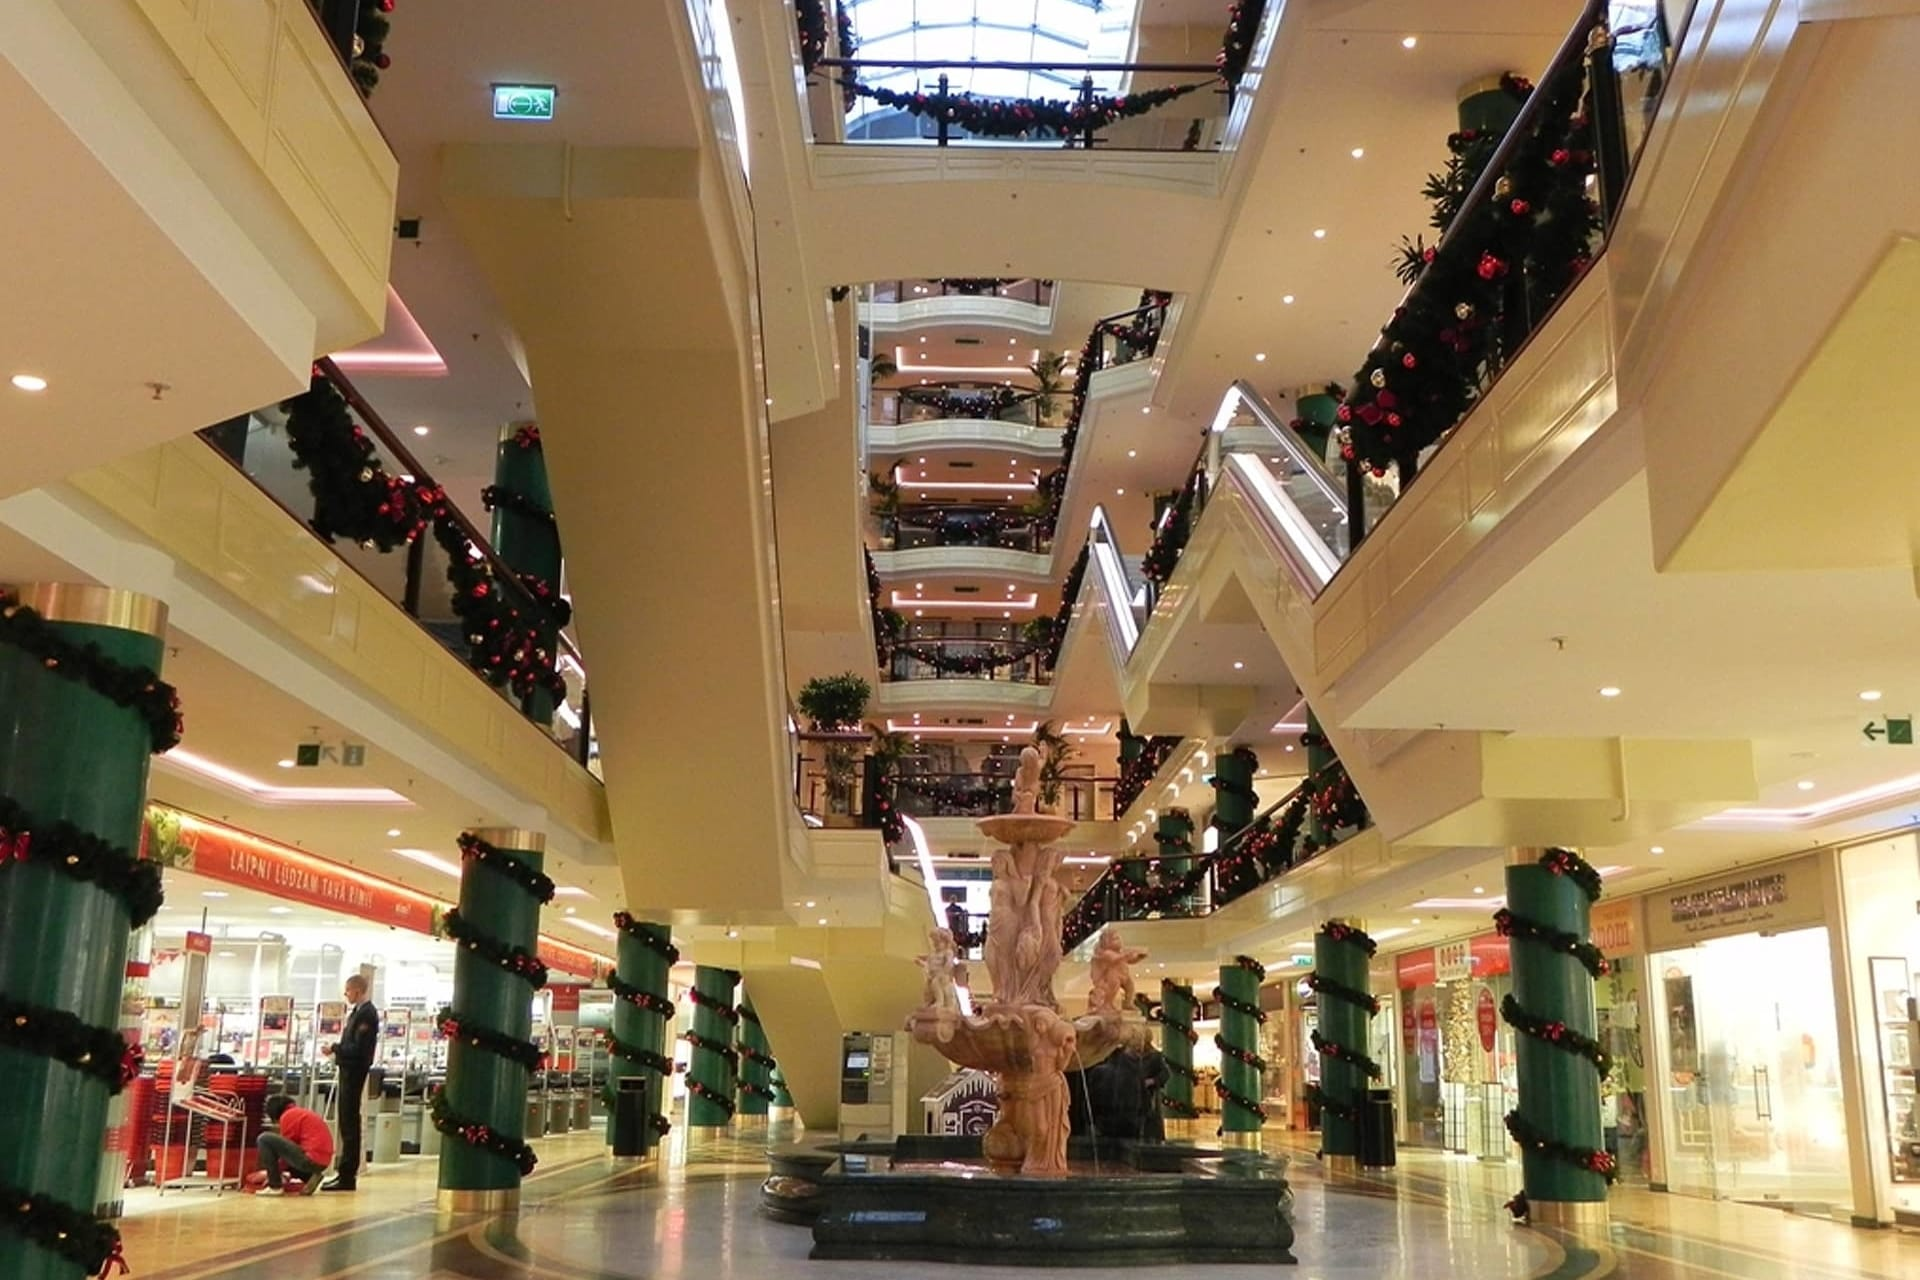 patello_shopping_centre1